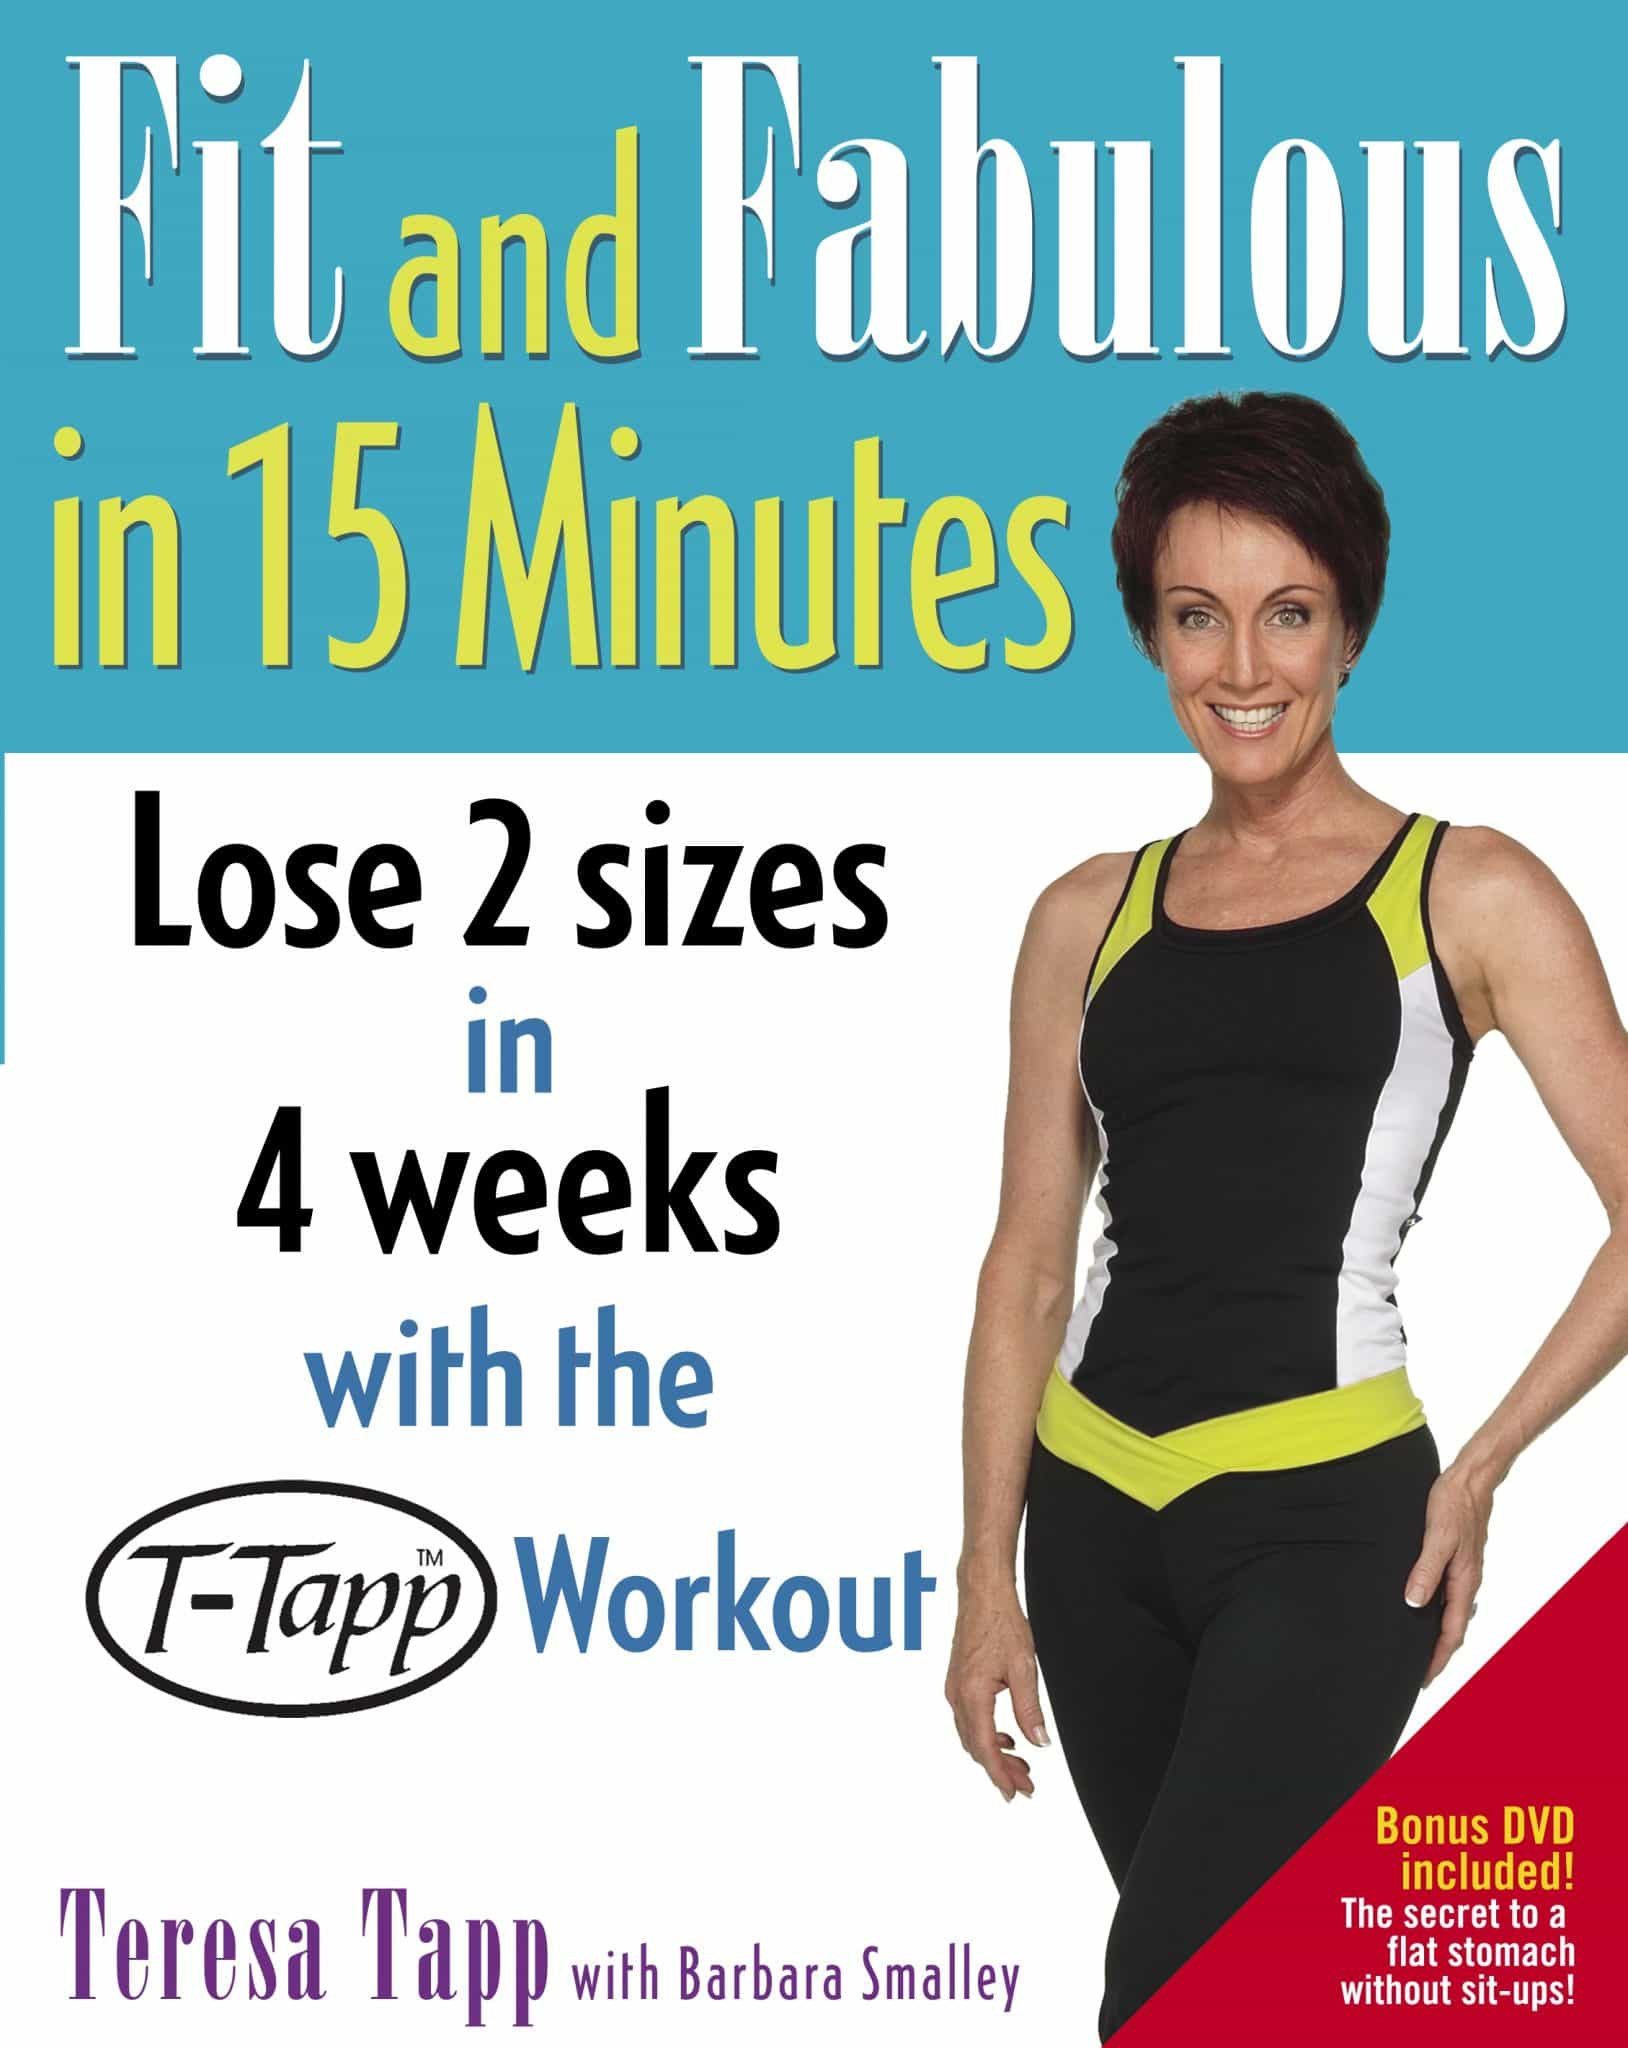 Fit and Fabulous in 15 Minutes by Teresa Tapp Review